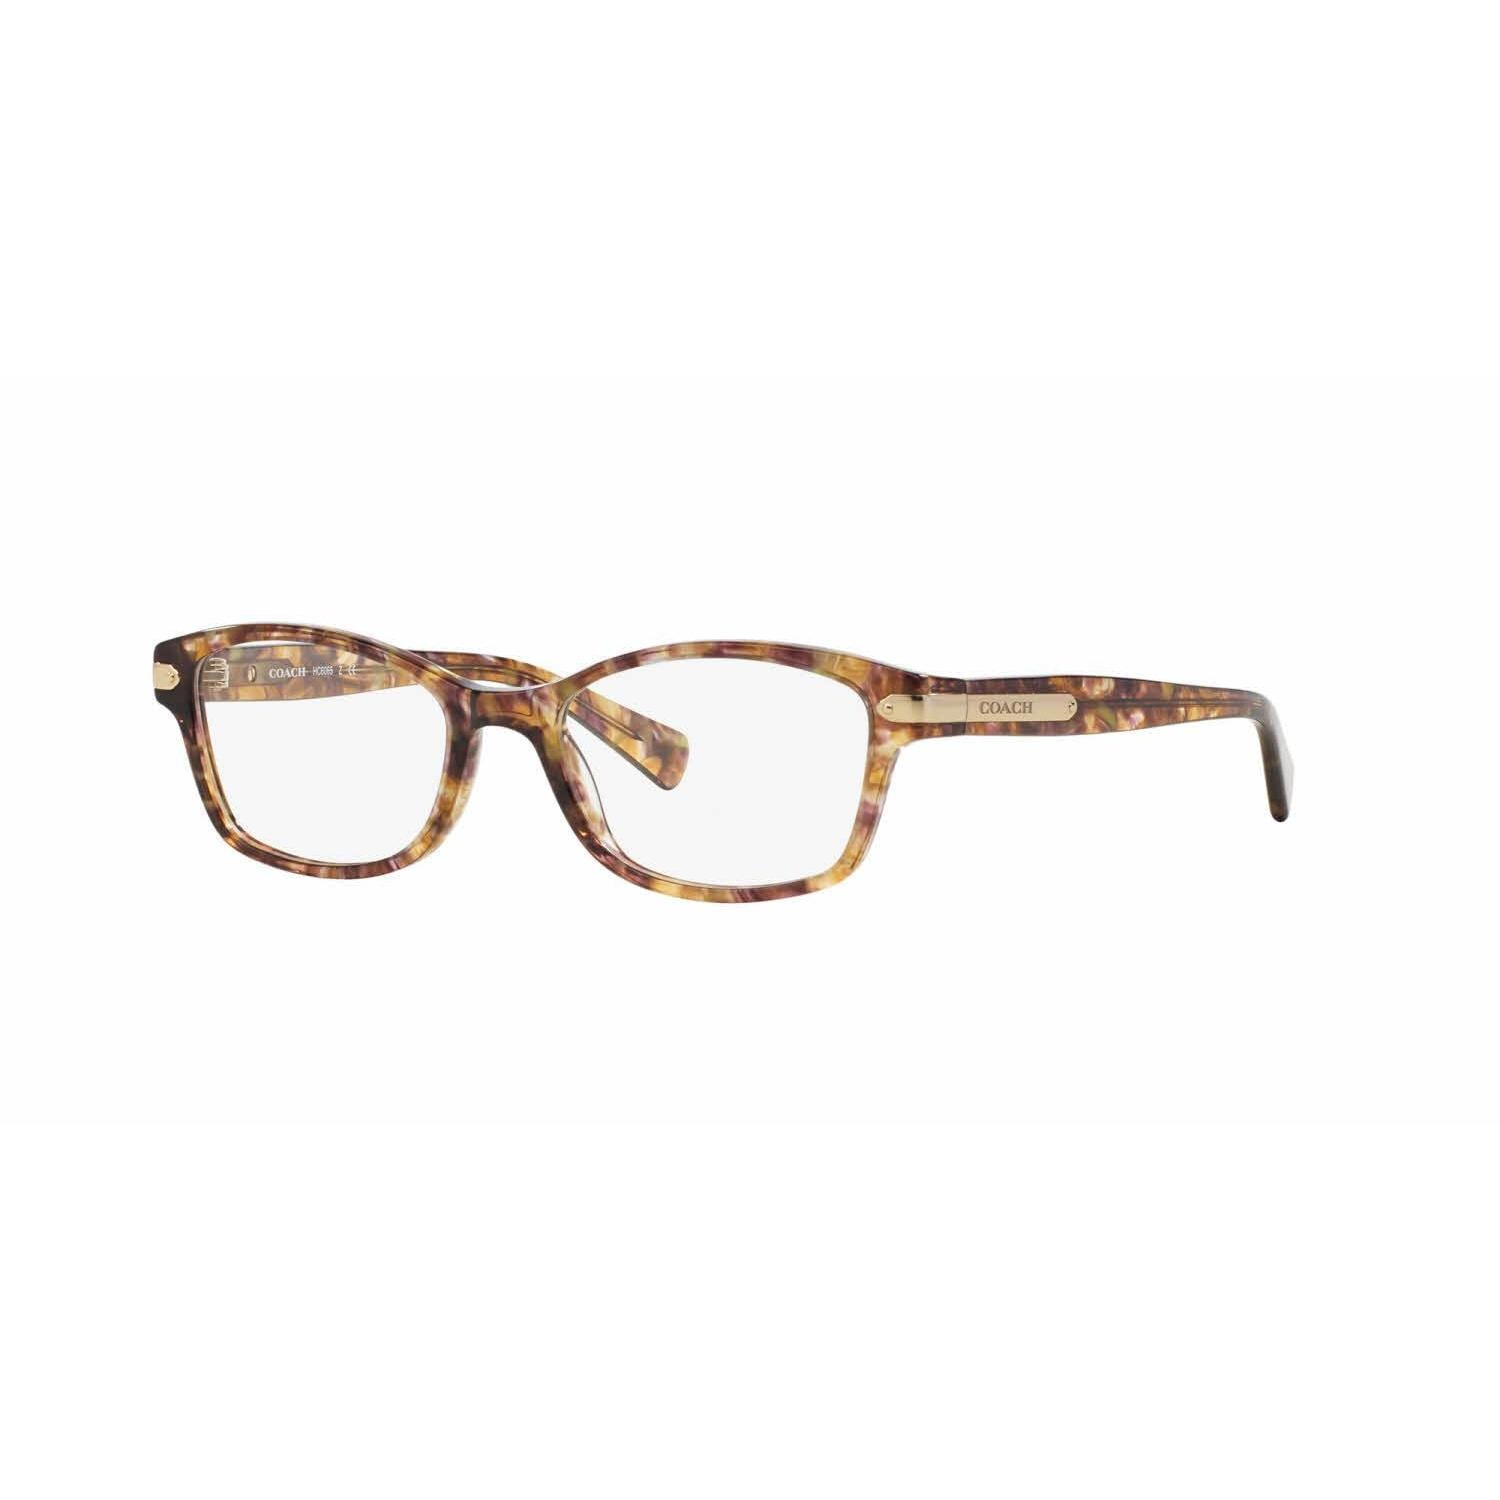 016d62752d8f Shop Coach Womens HC6065 5287 Light Brown Plastic Rectangle Eyeglasses -  Free Shipping Today - Overstock - 13613281